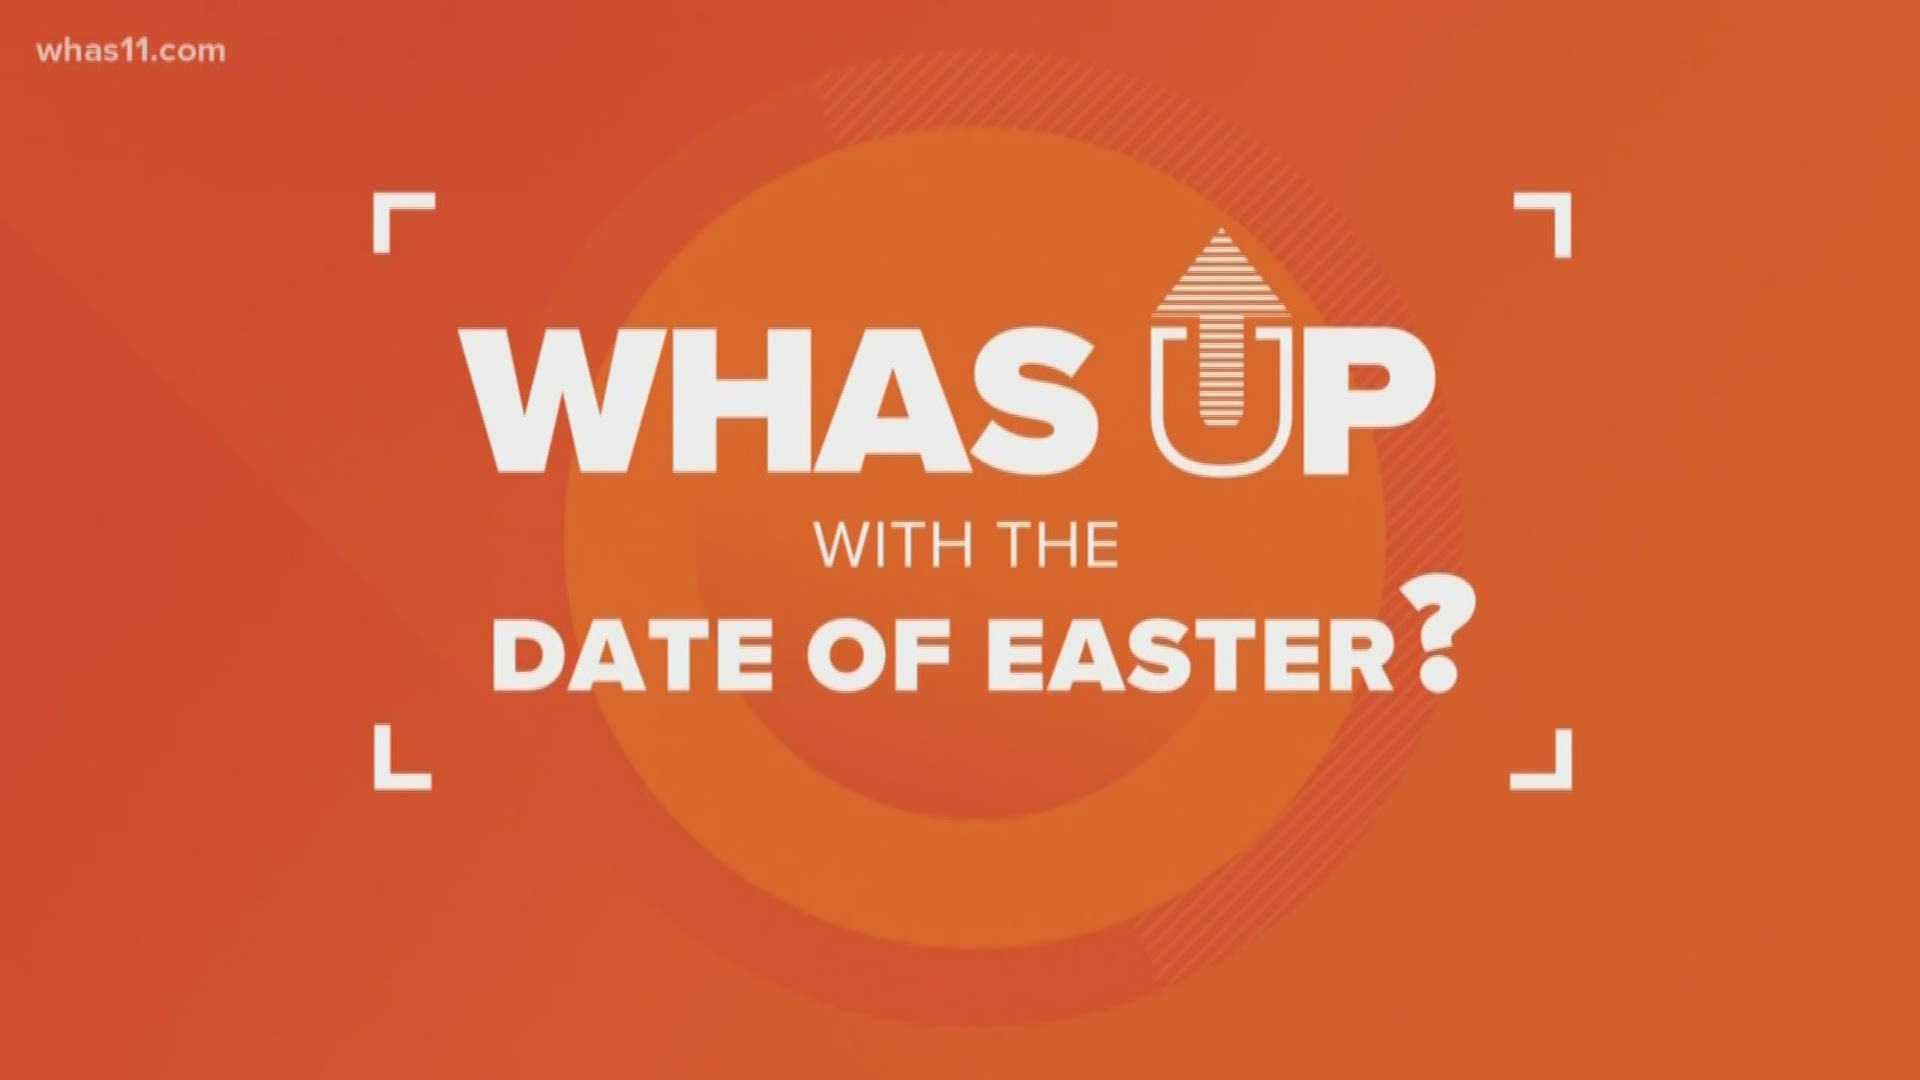 what is the date of easter 2010